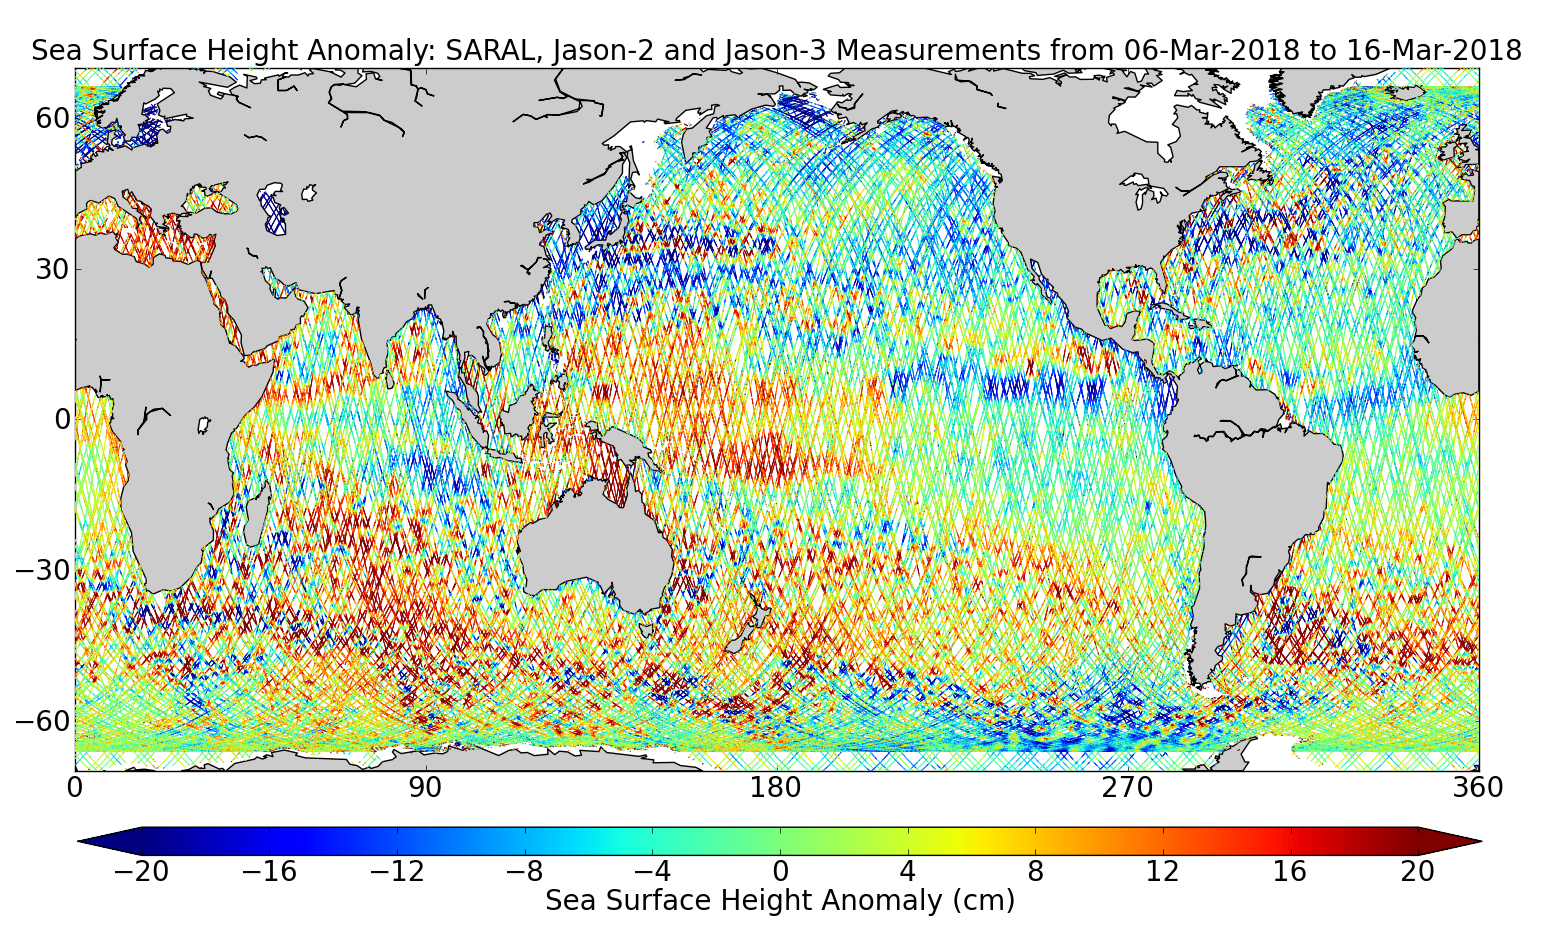 Sea Surface Height Anomaly: SARAL, Jason-2 and Jason-3 Measurements from 06-Mar-2018 to 16-Mar-2018